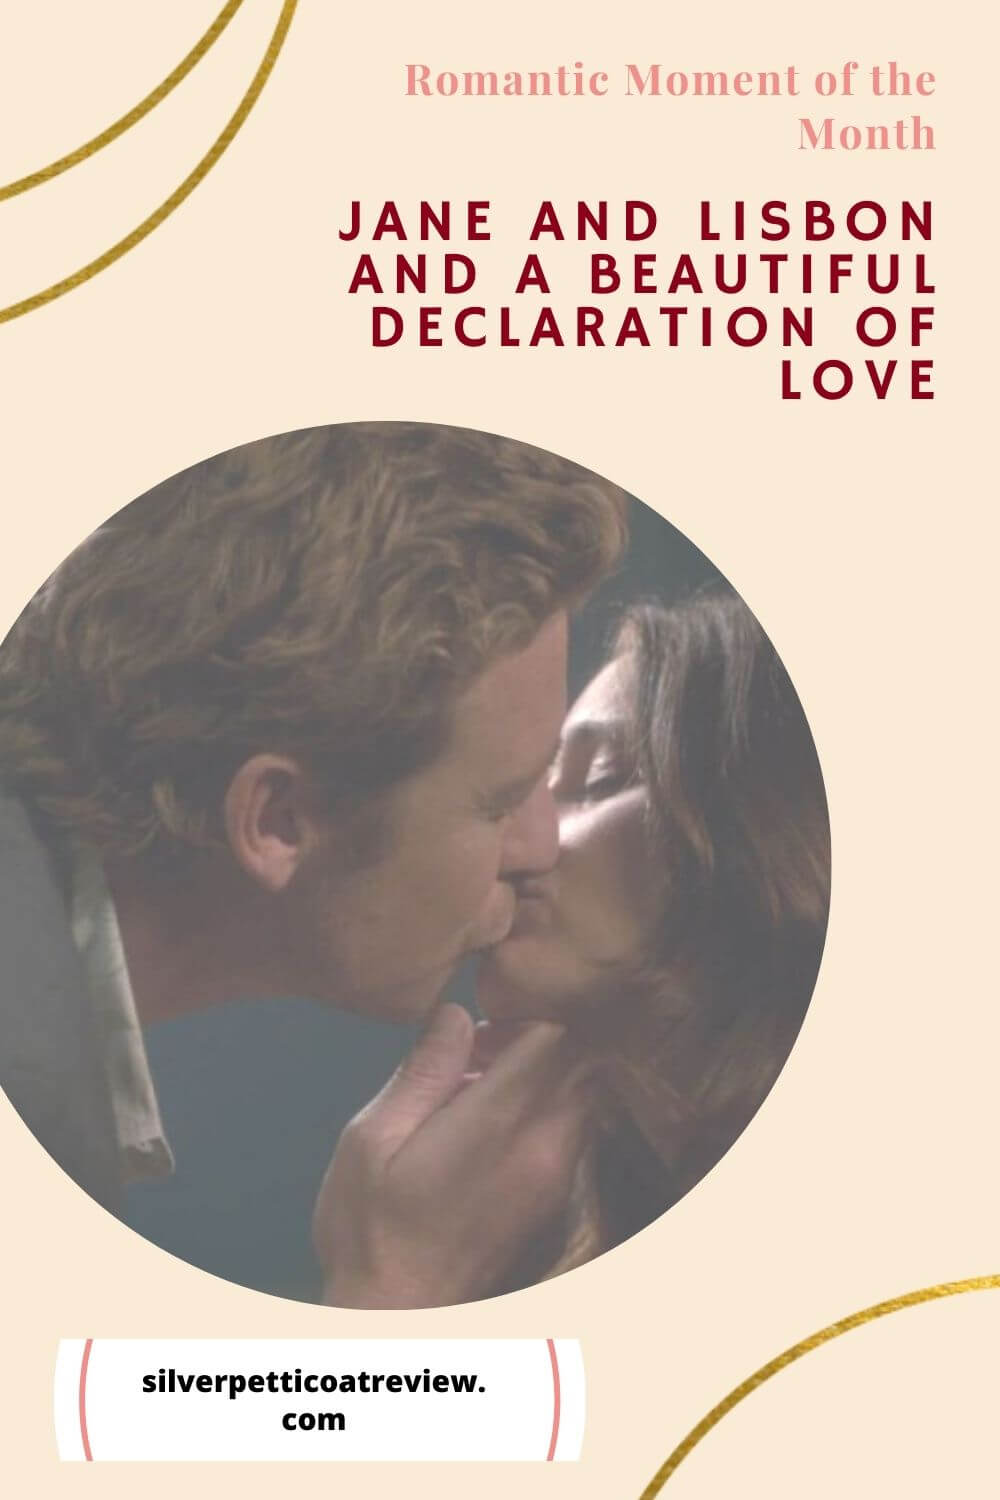 Jane and Lisbon and a Beautiful Declaration of Love; Pinterest image